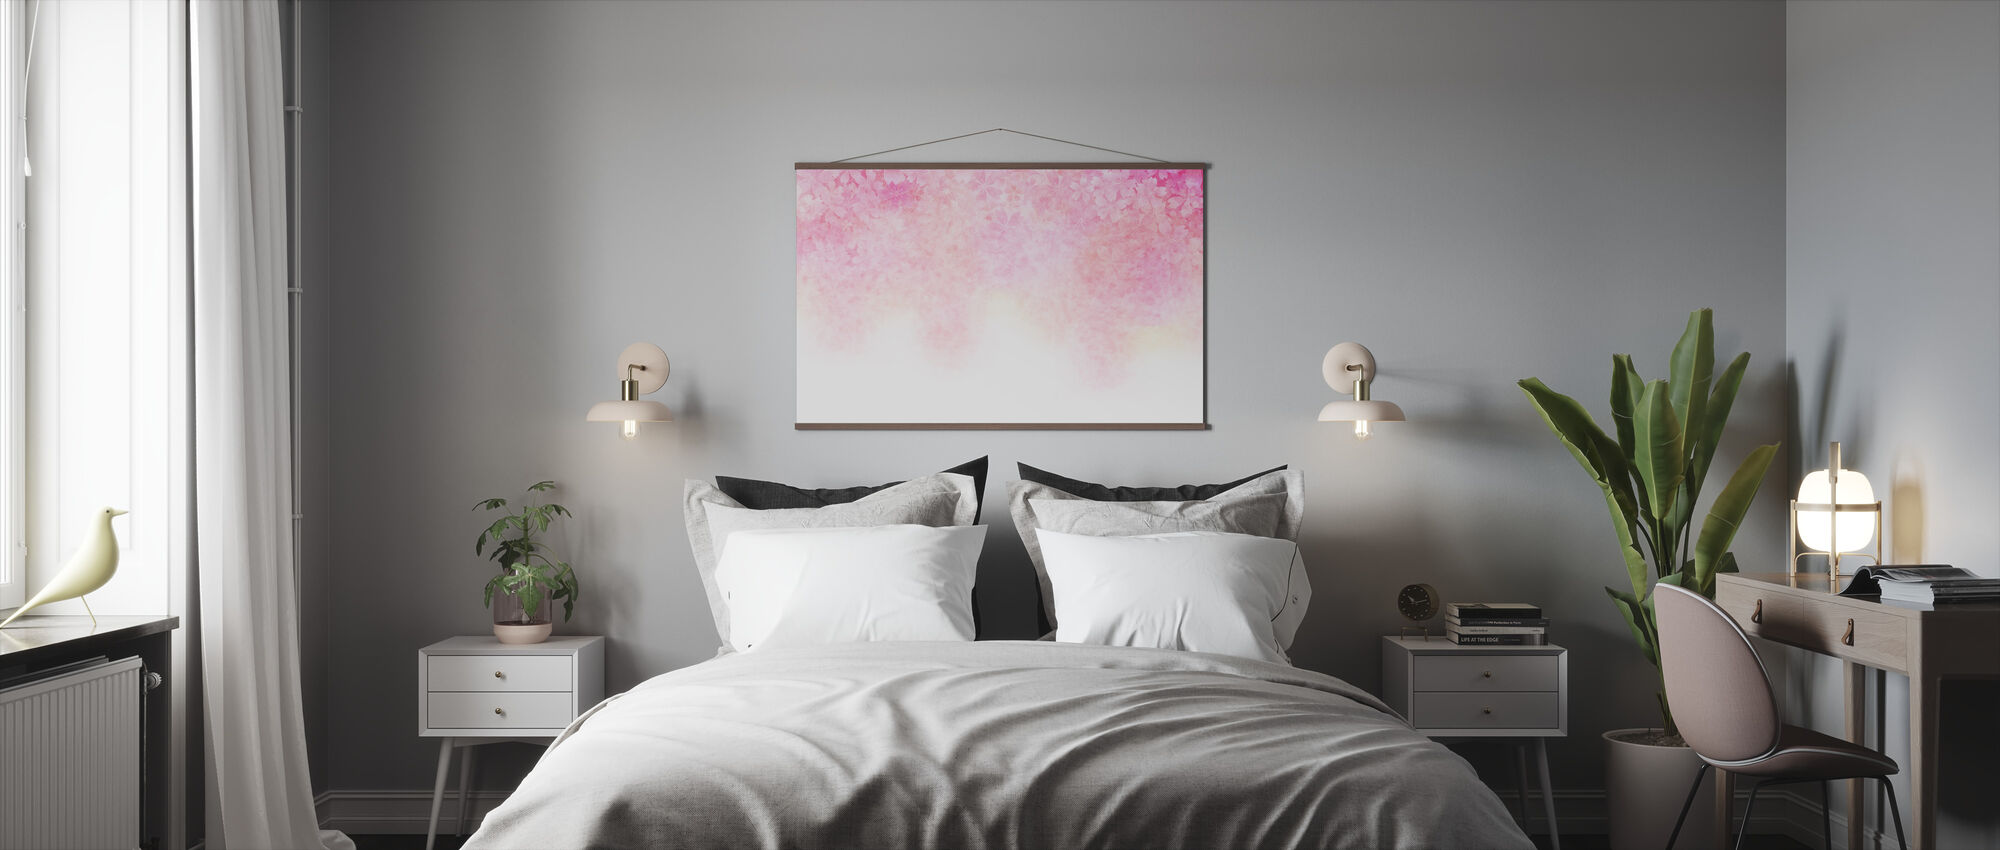 Cherry Blossom - Poster - Bedroom